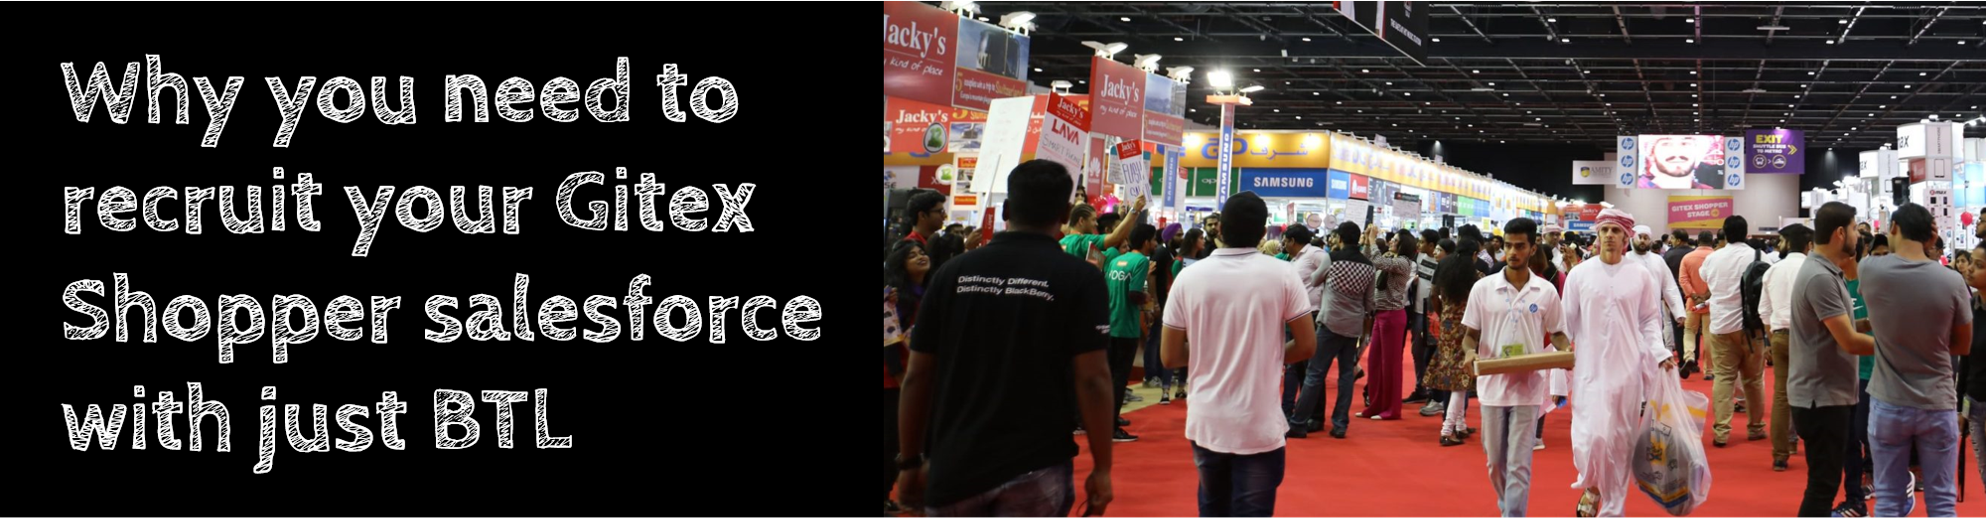 💡 WHY YOU NEED TO RECRUIT YOUR GITEX SHOPPER SALESFORCE WITH JUST BTL